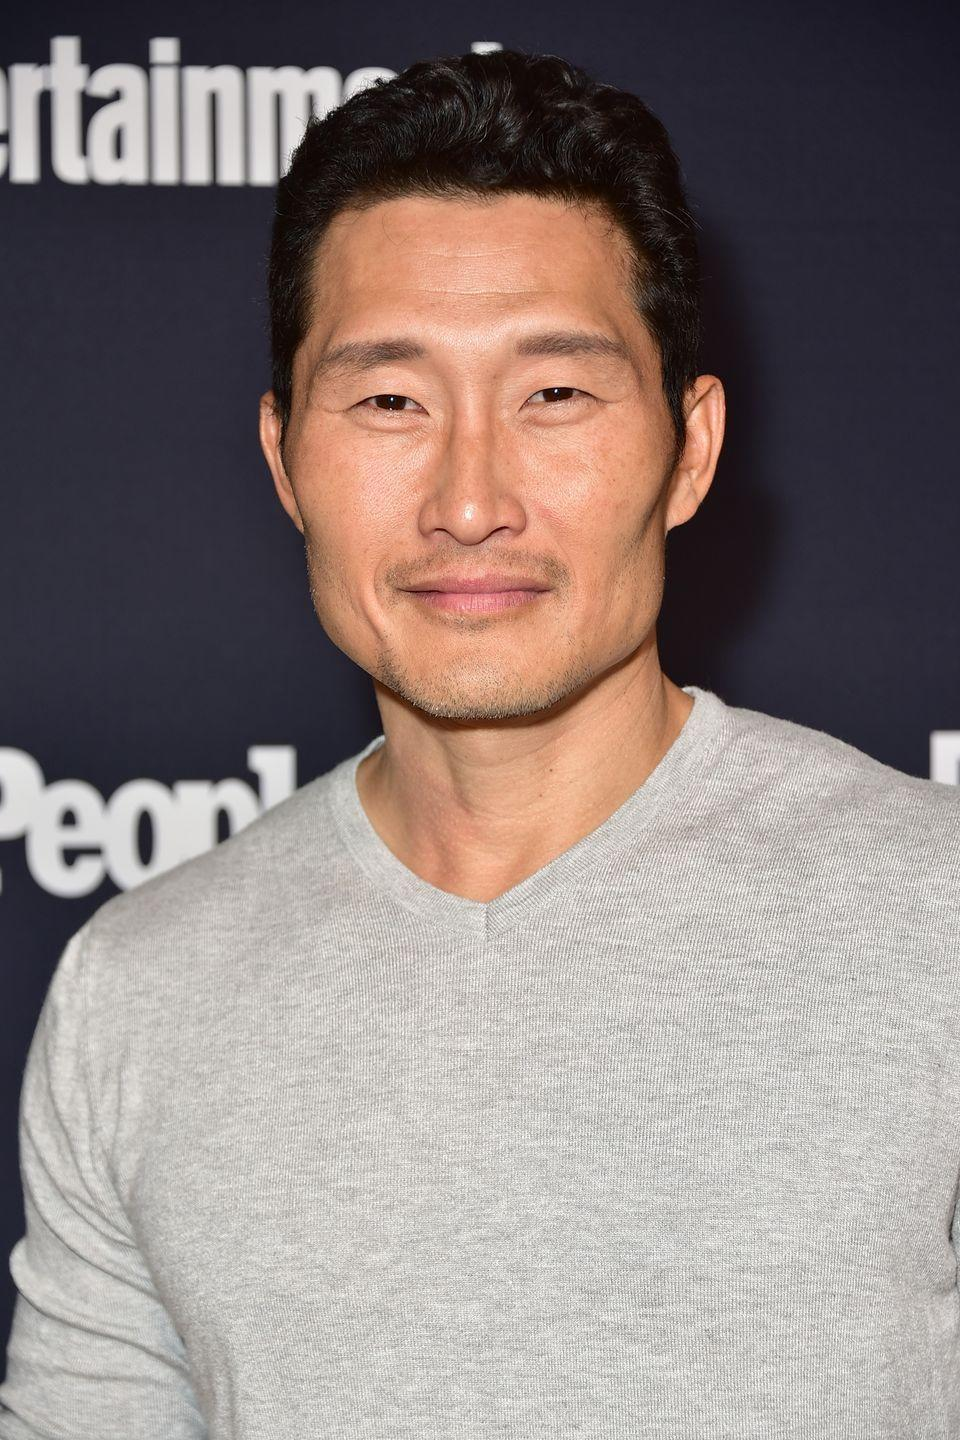 "<p>Daniel Dae Kim was one of the stars of <em>Hawaii Five-O</em> for seven seasons, however his pay didn't match his white costars. After the network rejected his request to <a href=""https://www.cnbc.com/2017/07/06/daniel-dae-kim-and-grace-park-leave-hawaii-five-0-over-pay-dispute.html"" rel=""nofollow noopener"" target=""_blank"" data-ylk=""slk:renegotiate his salary"" class=""link rapid-noclick-resp"">renegotiate his salary</a>, the actor decided it was time to leave the show. </p>"